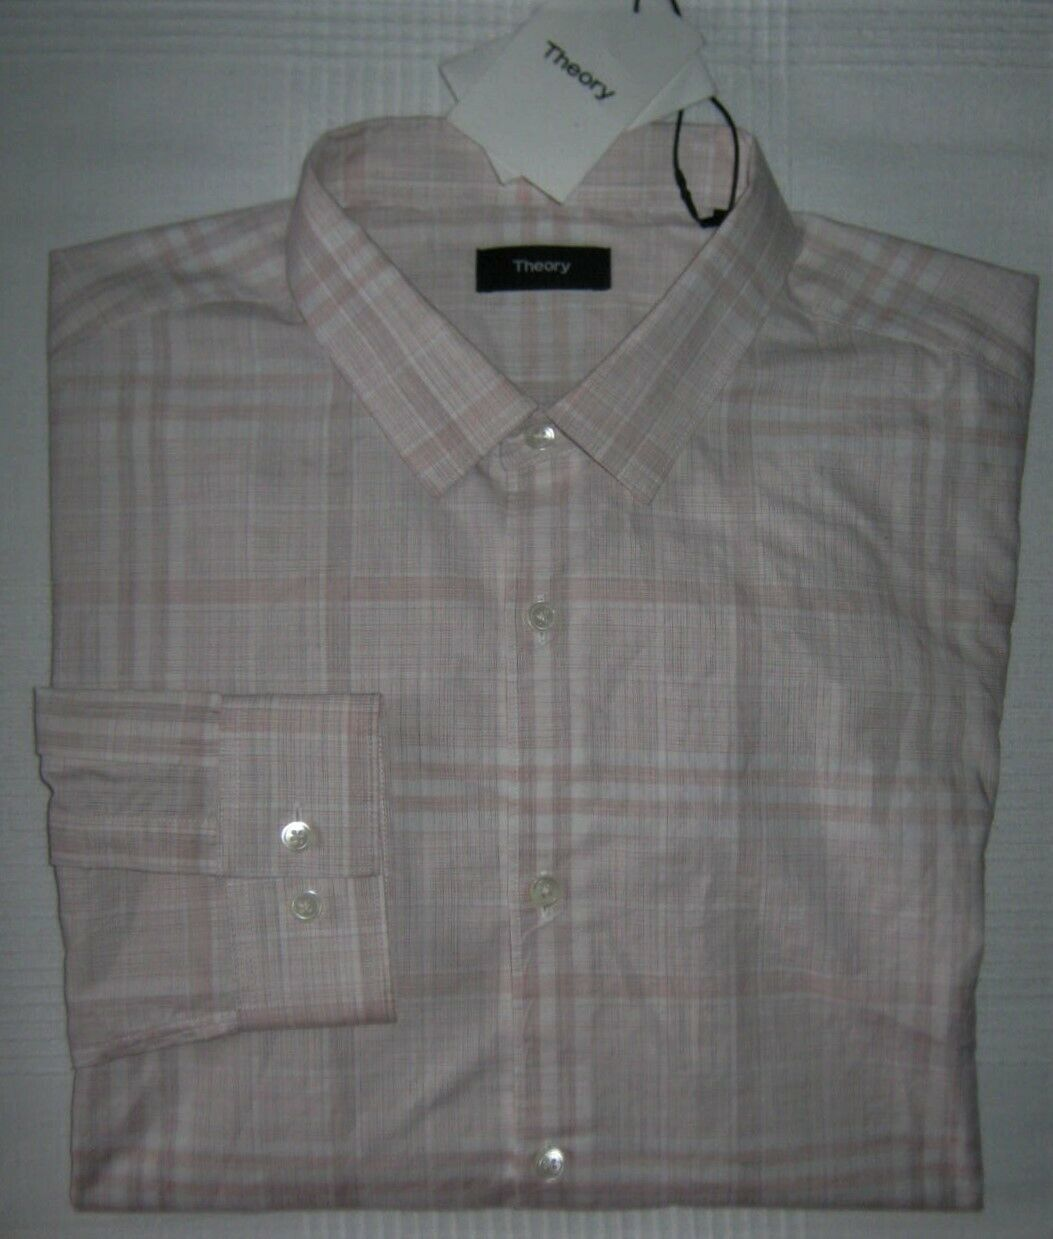 Theory Mens Murrary Dada Melange NWT $195 Plaid Button-down Shirt Pink Plaid XL